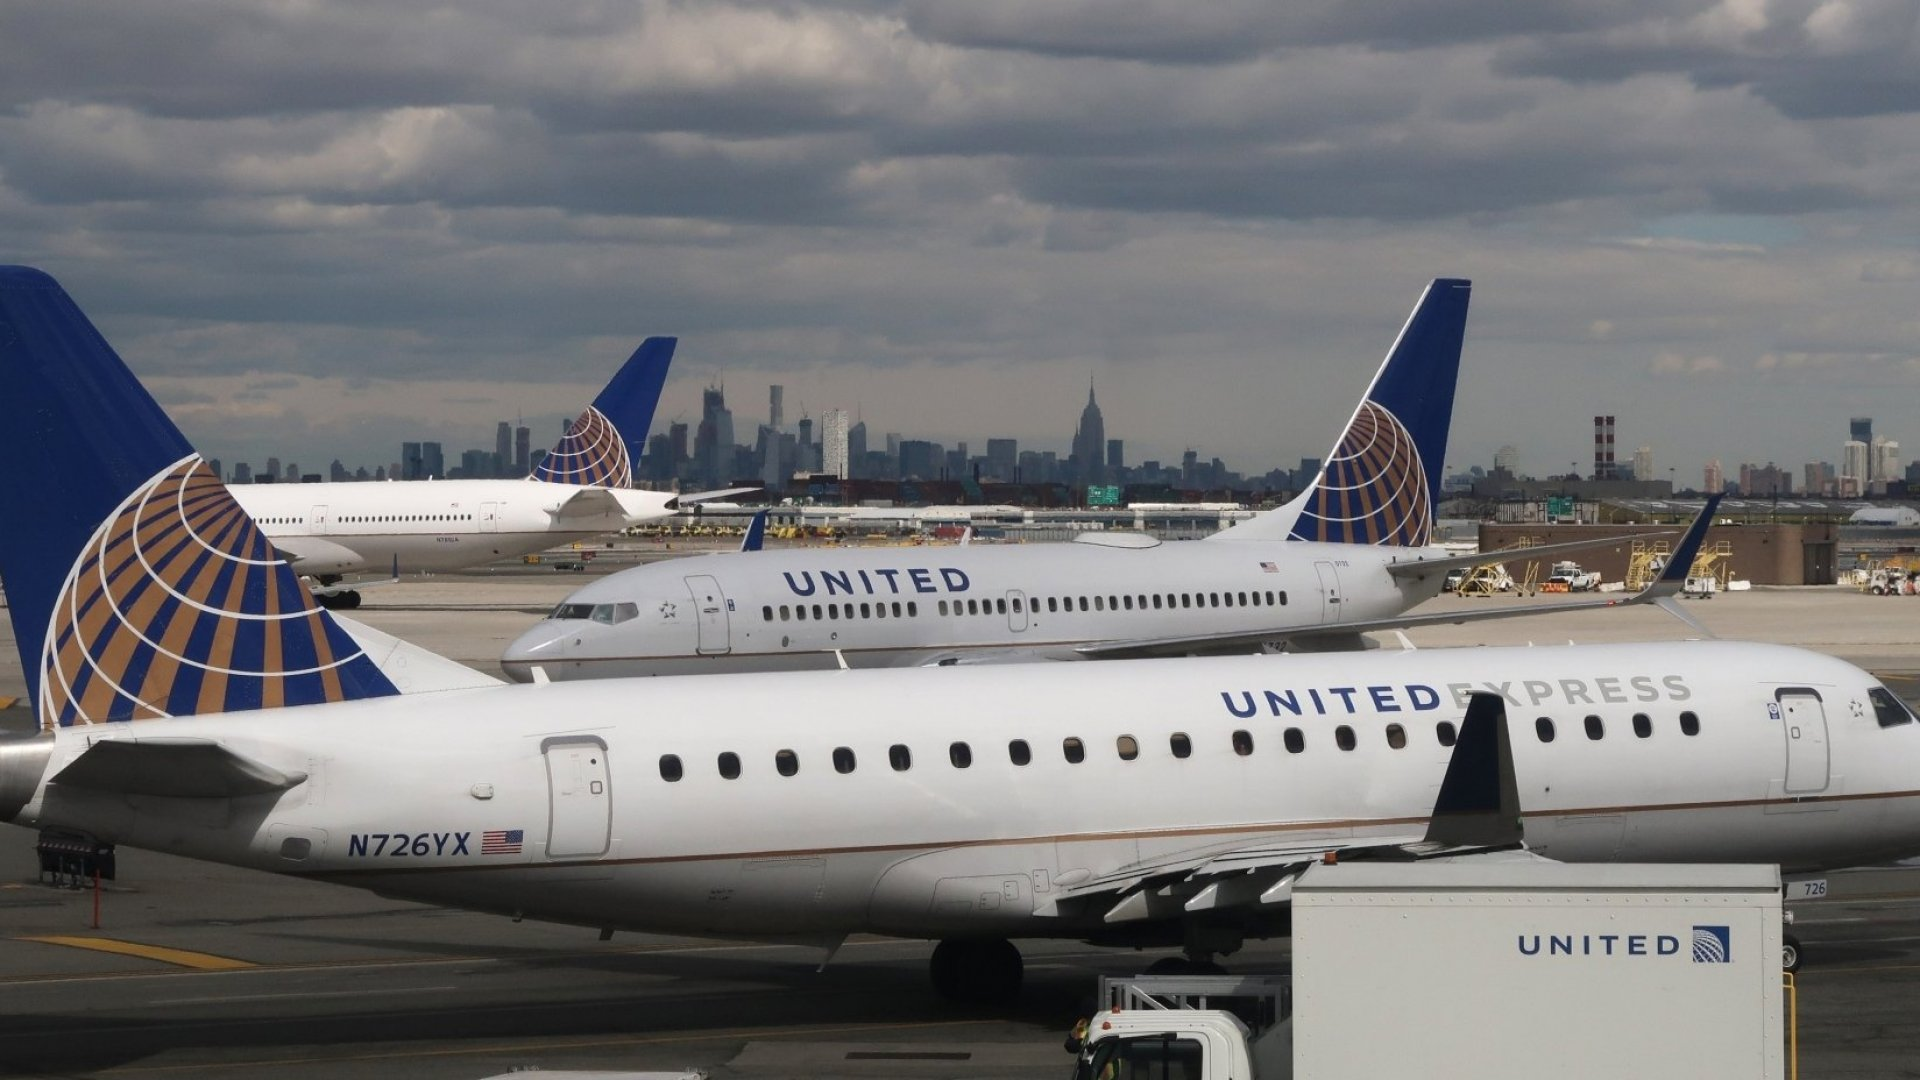 United Airlines Flight Attendants Are Angry About What the Airline Is Suddenly Forcing Them to Do